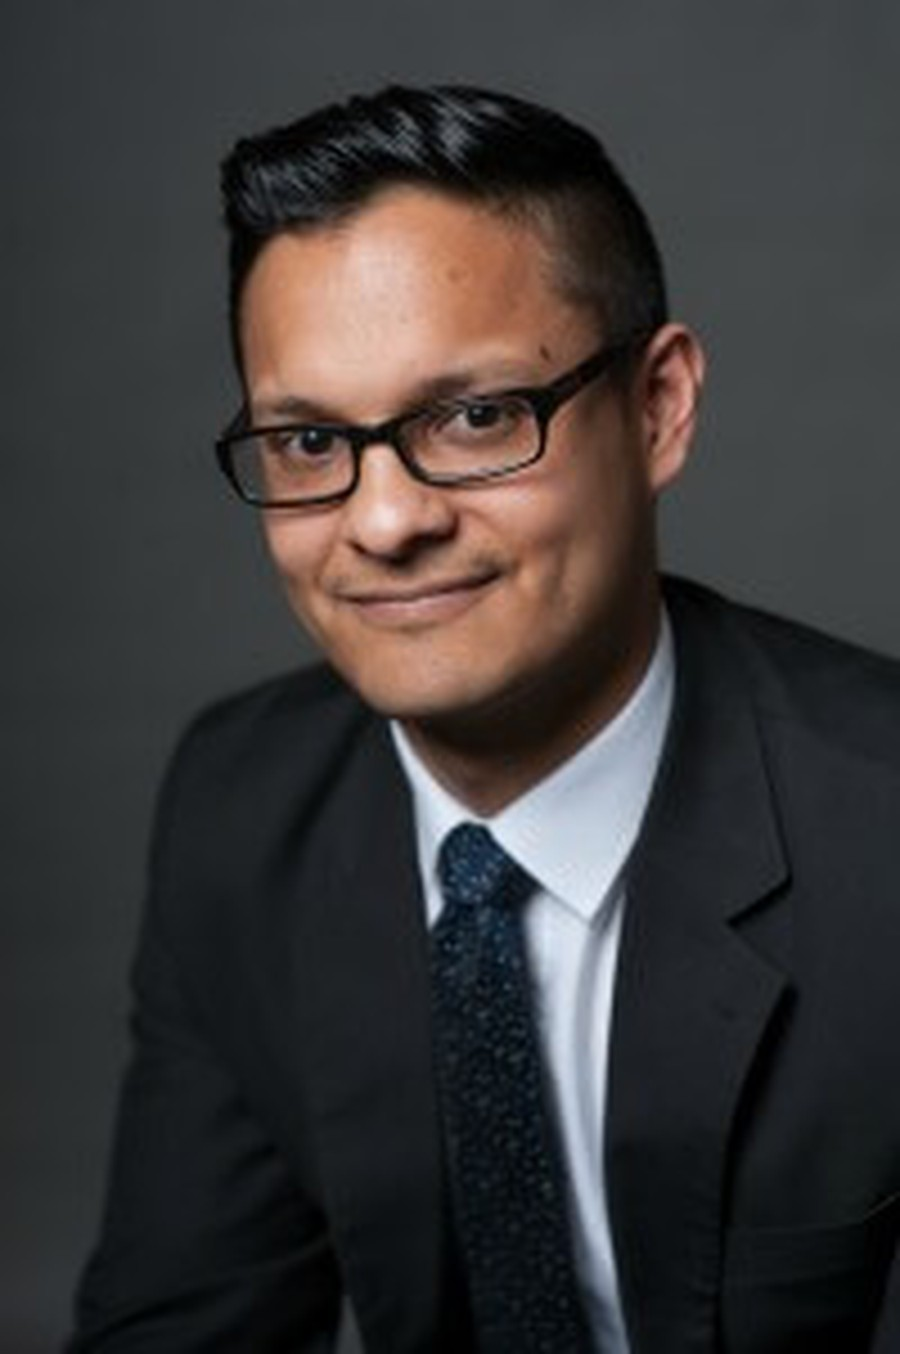 Sociology professor Robert Vargas is heading the Violence, Law, and Politics Lab at the University.